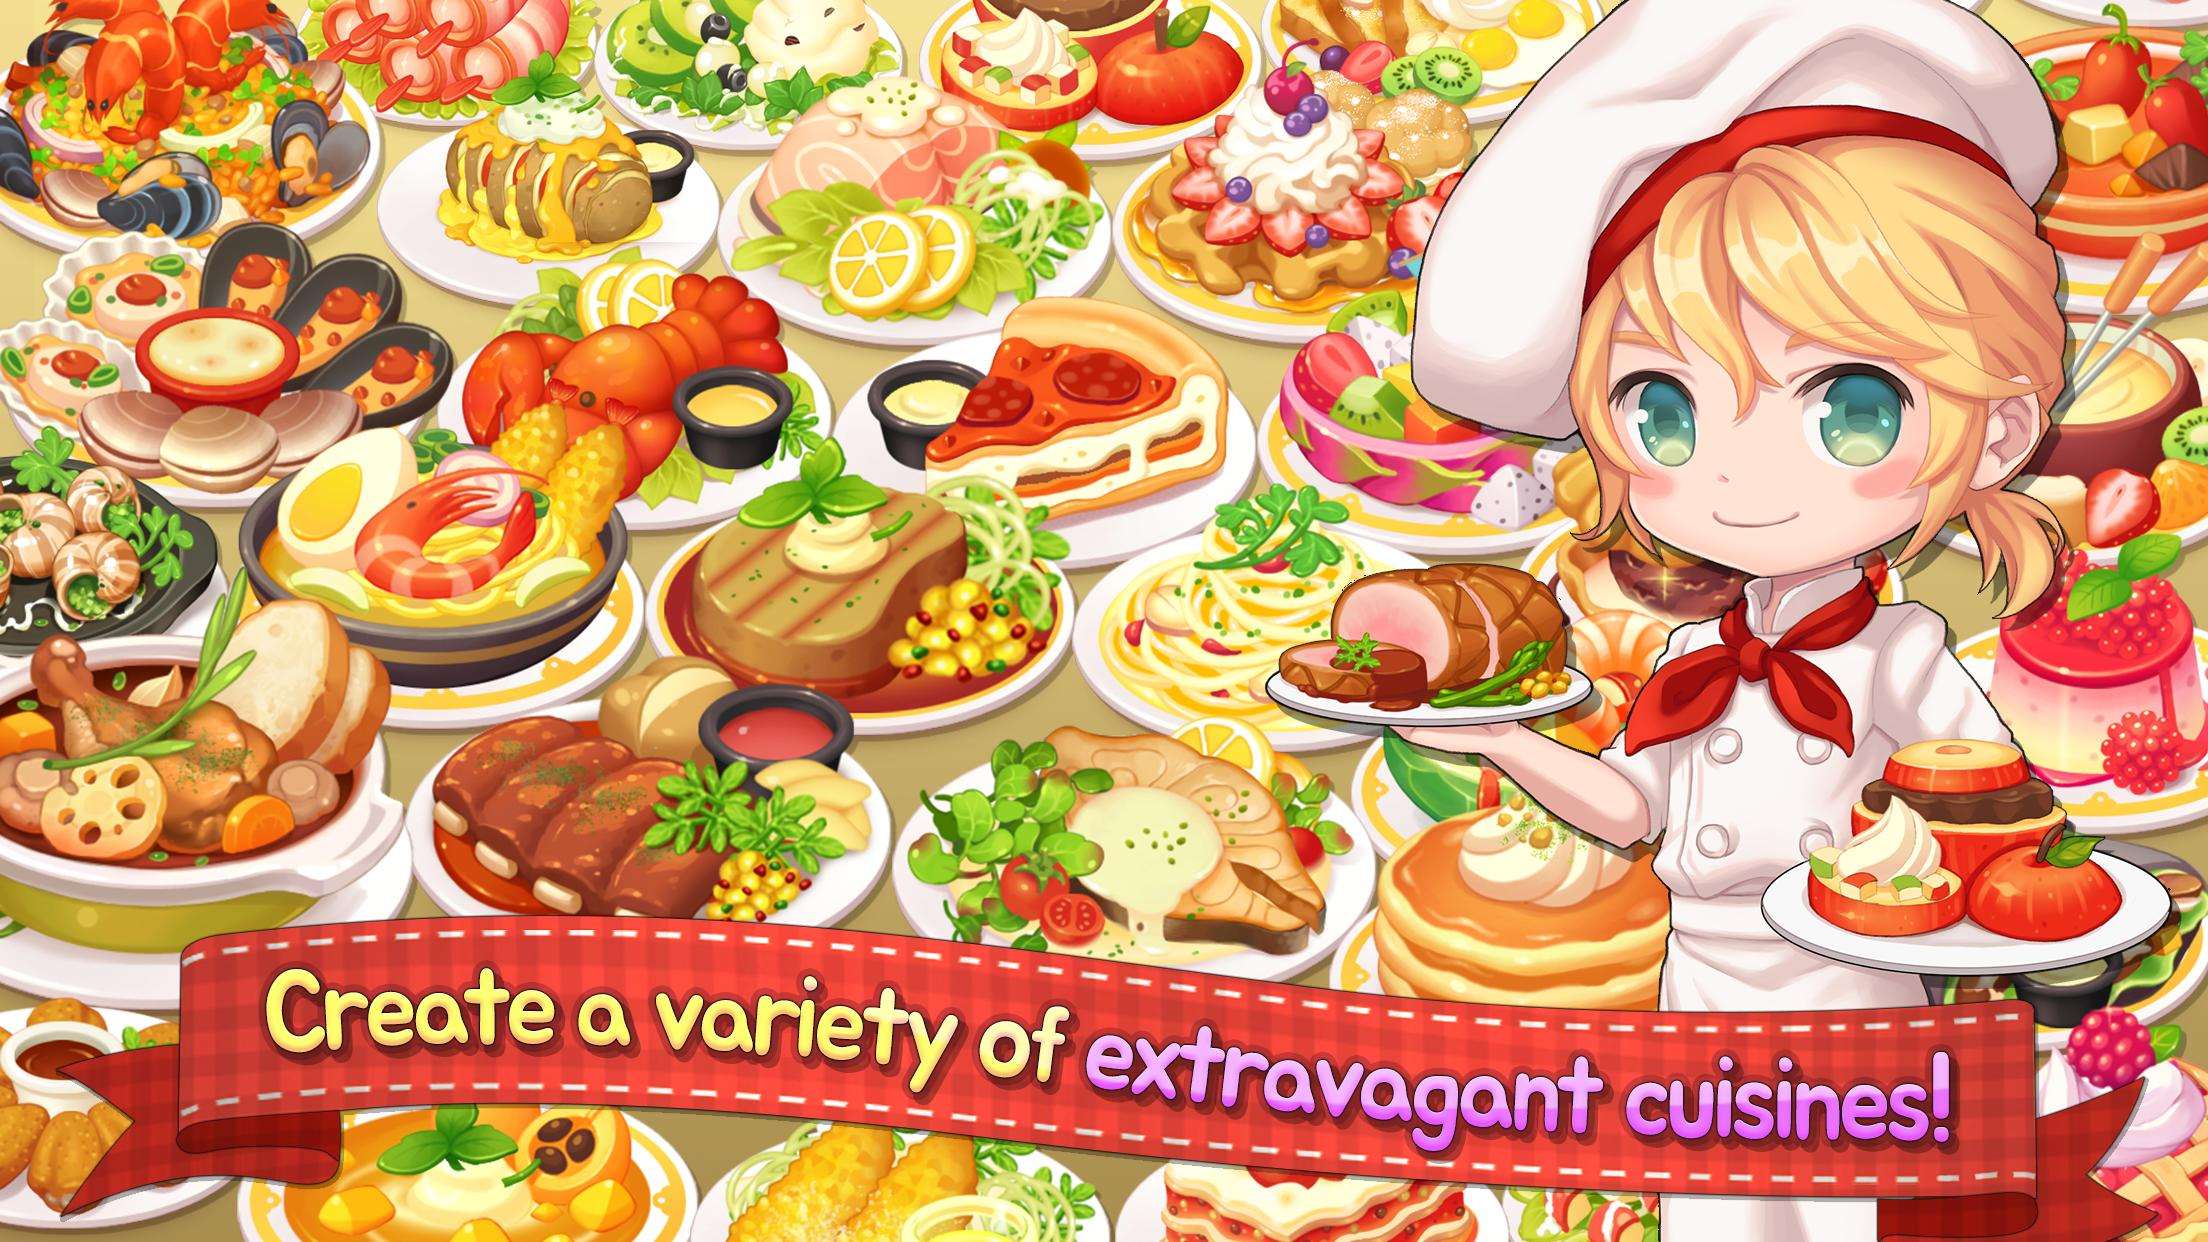 My Secret Bistro Play cooking game with friends 1.6.4 Screenshot 9